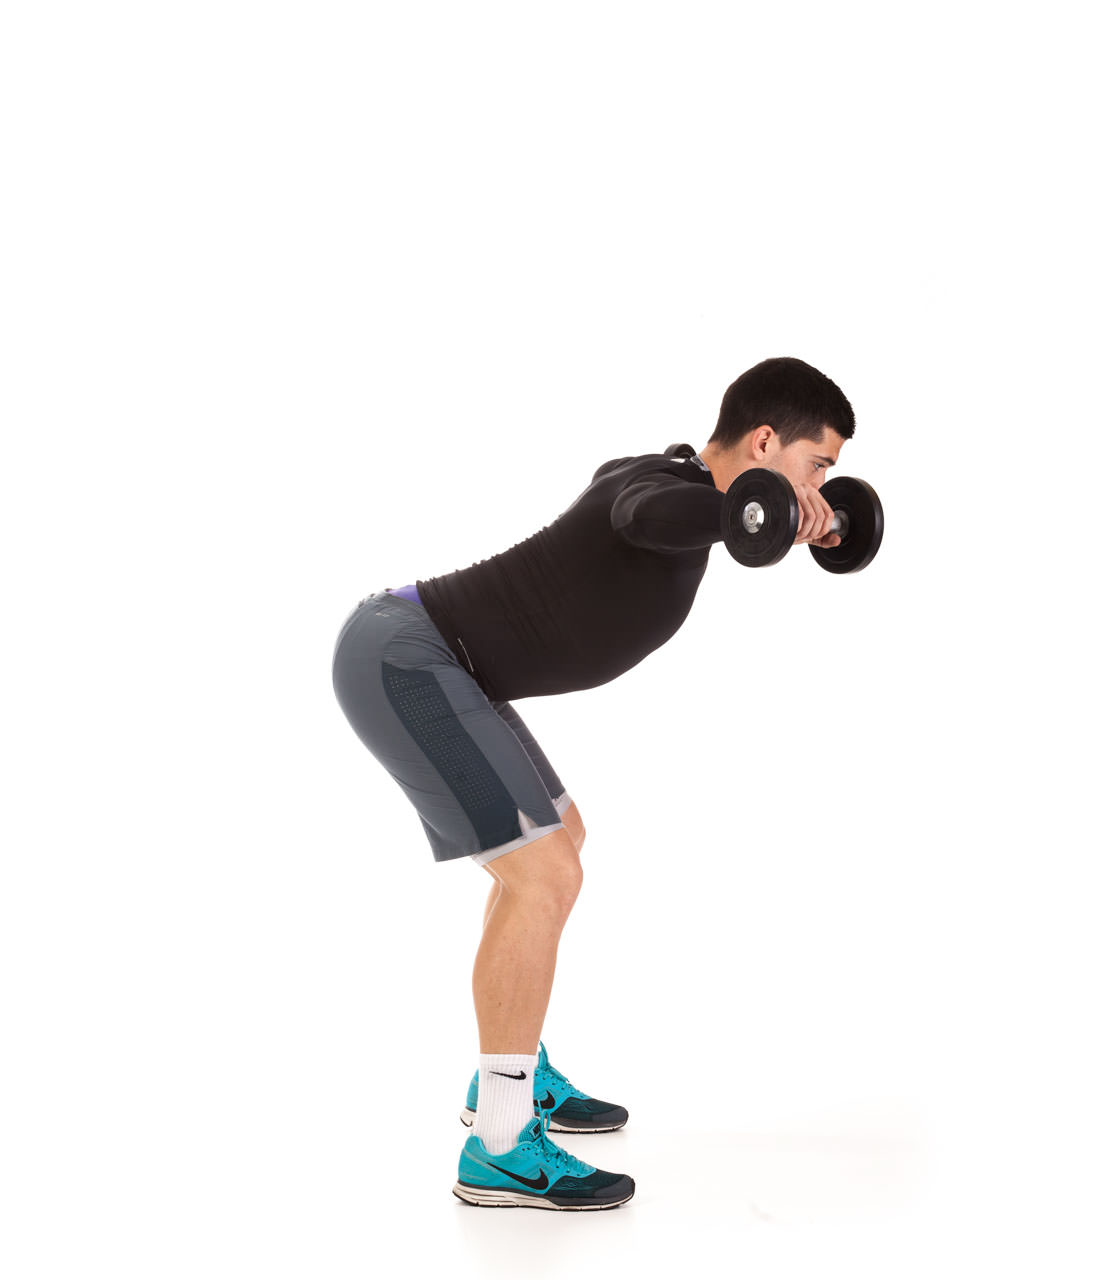 Bent Over Dumbbell Lateral Raise frame #5